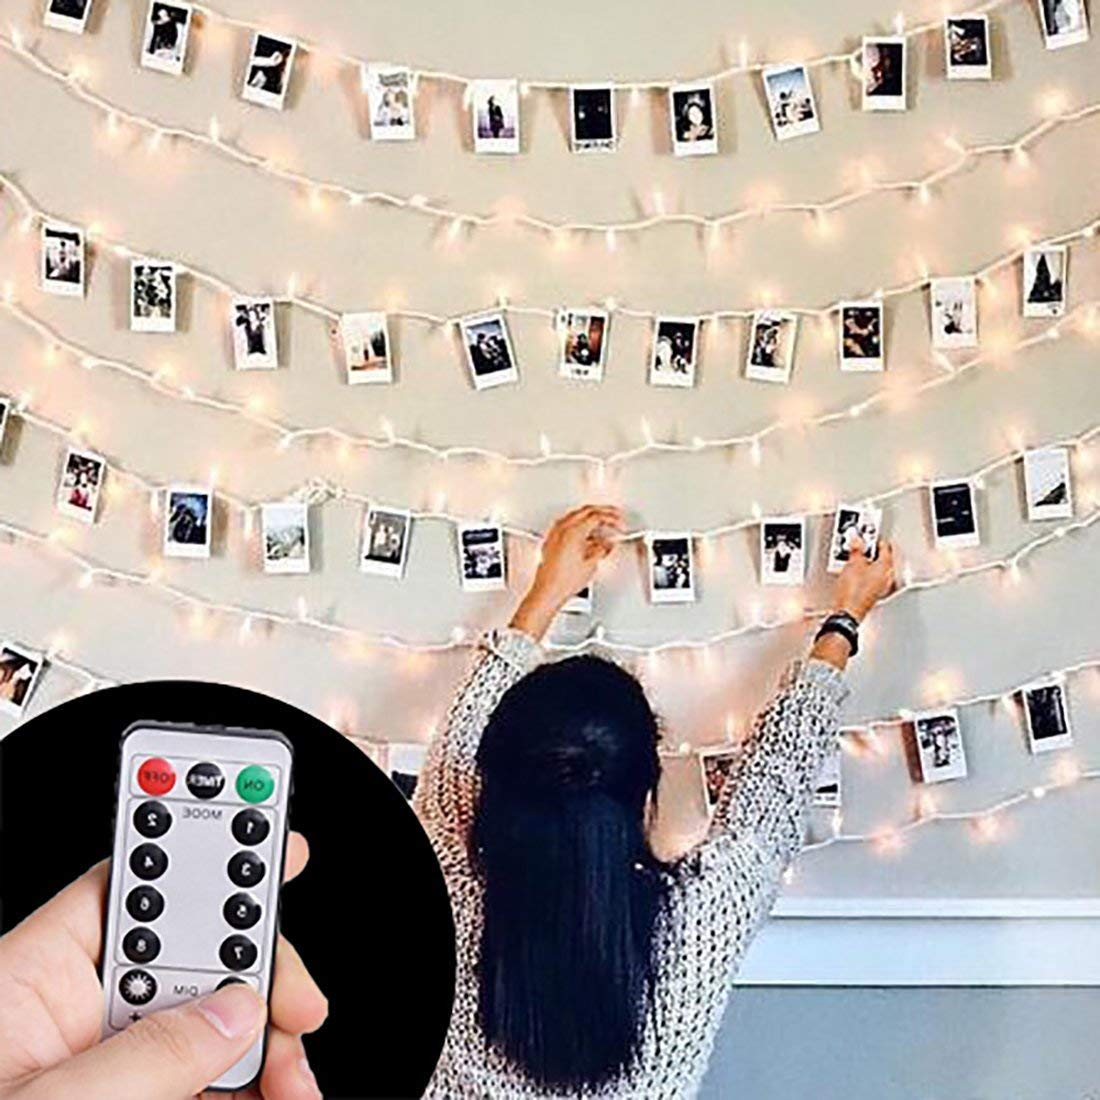 HAYATA ??[Remote & Timer] 40 LED Wooden Photo Clips String Light Picture Display - 20ft Fairy Battery Operated Hanging Picture Frame for Party Wedding Dorm Bedroom Birthday Christmas Decorations